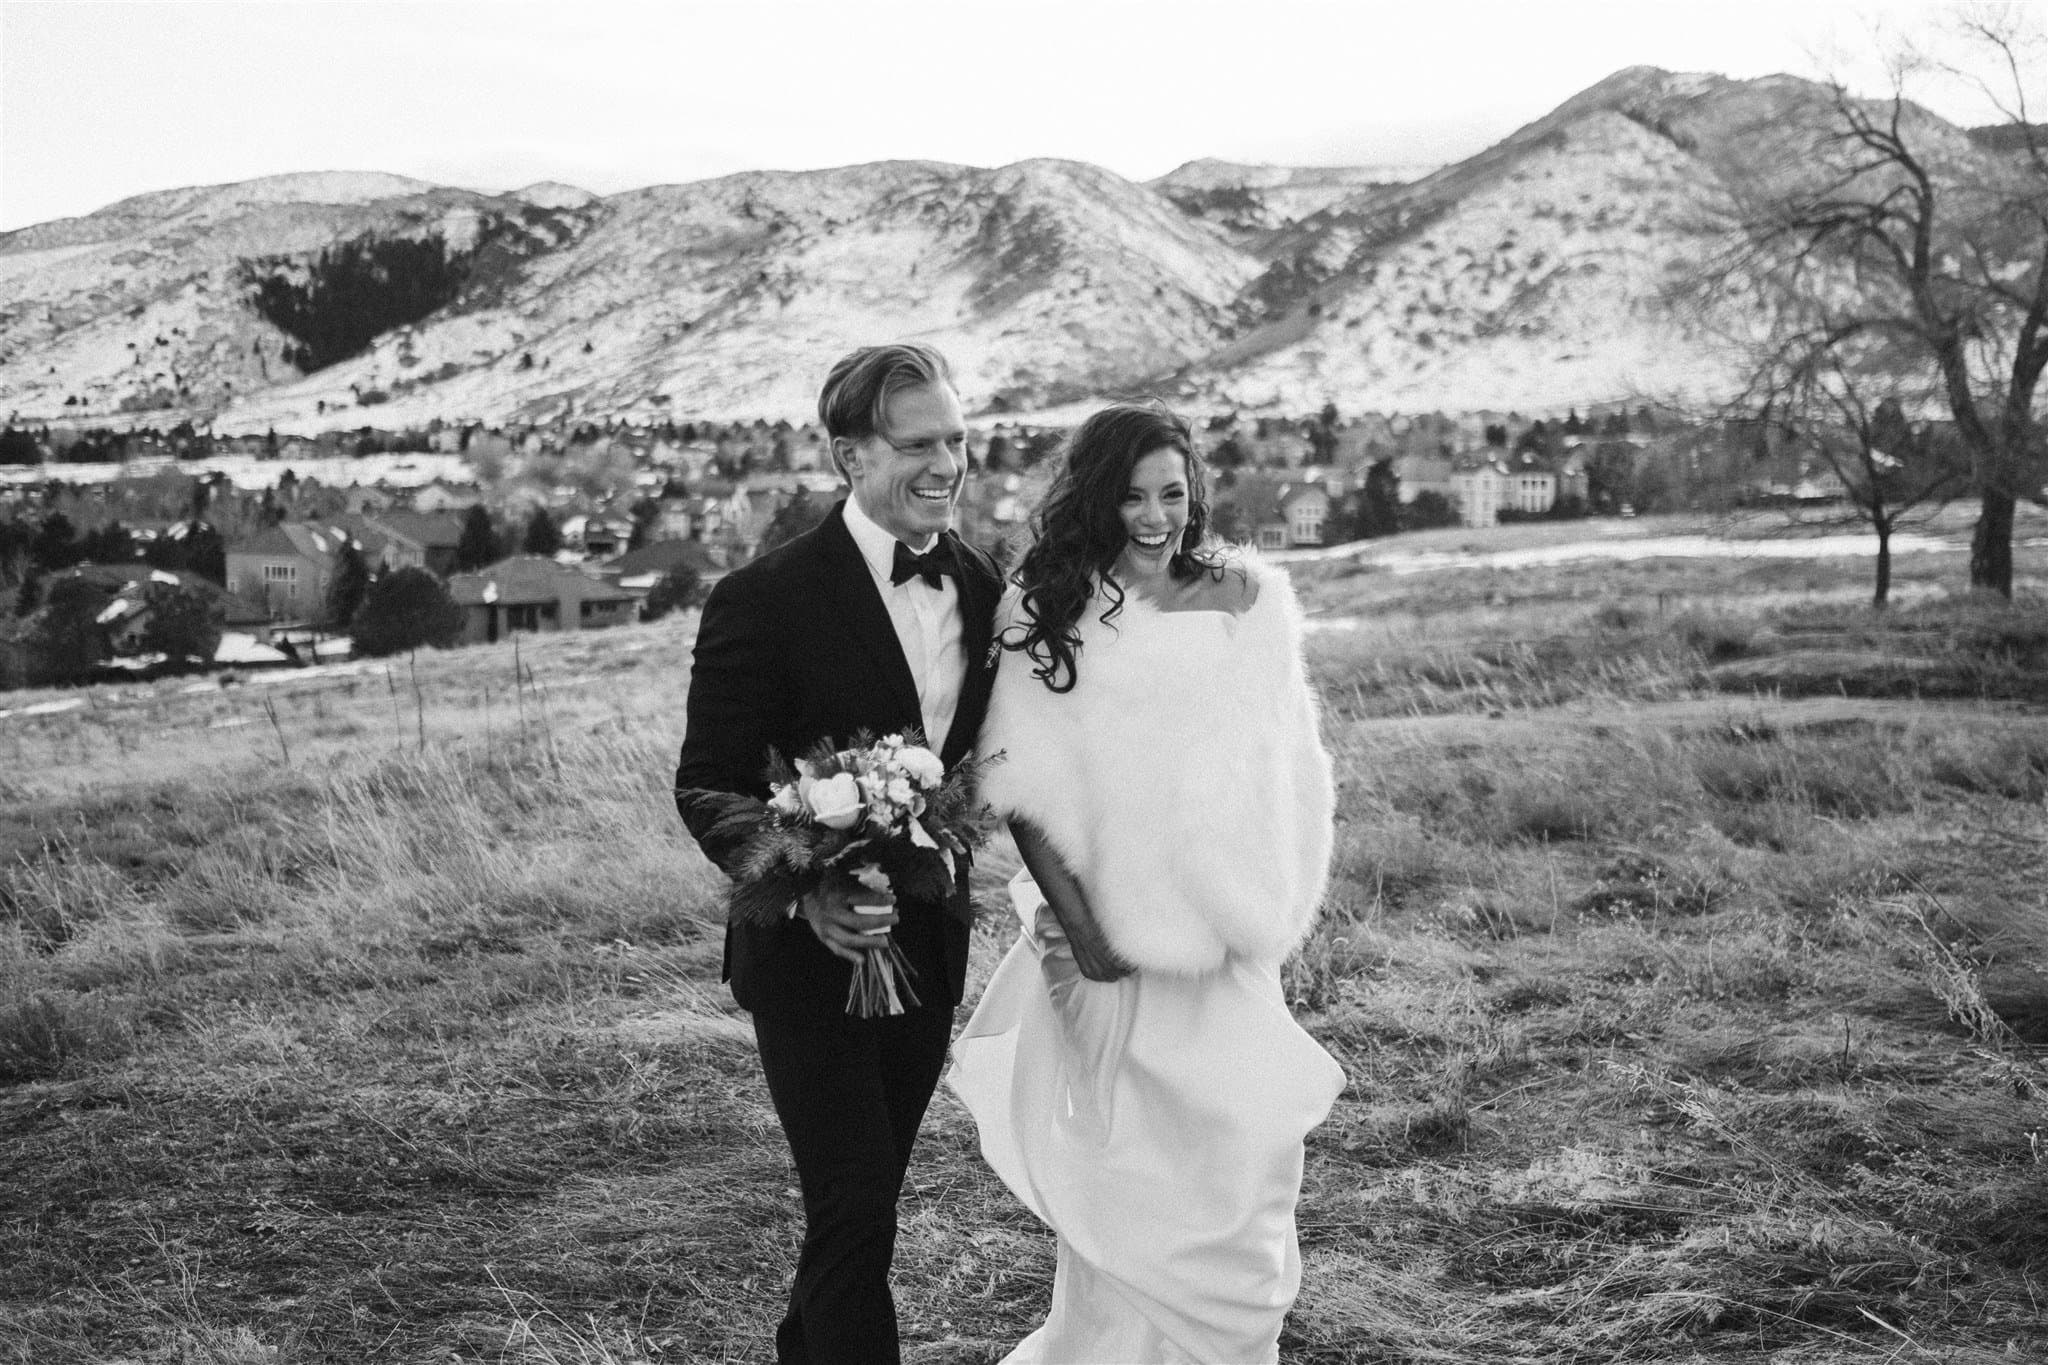 Bride and groom walking in the foothills near Denver